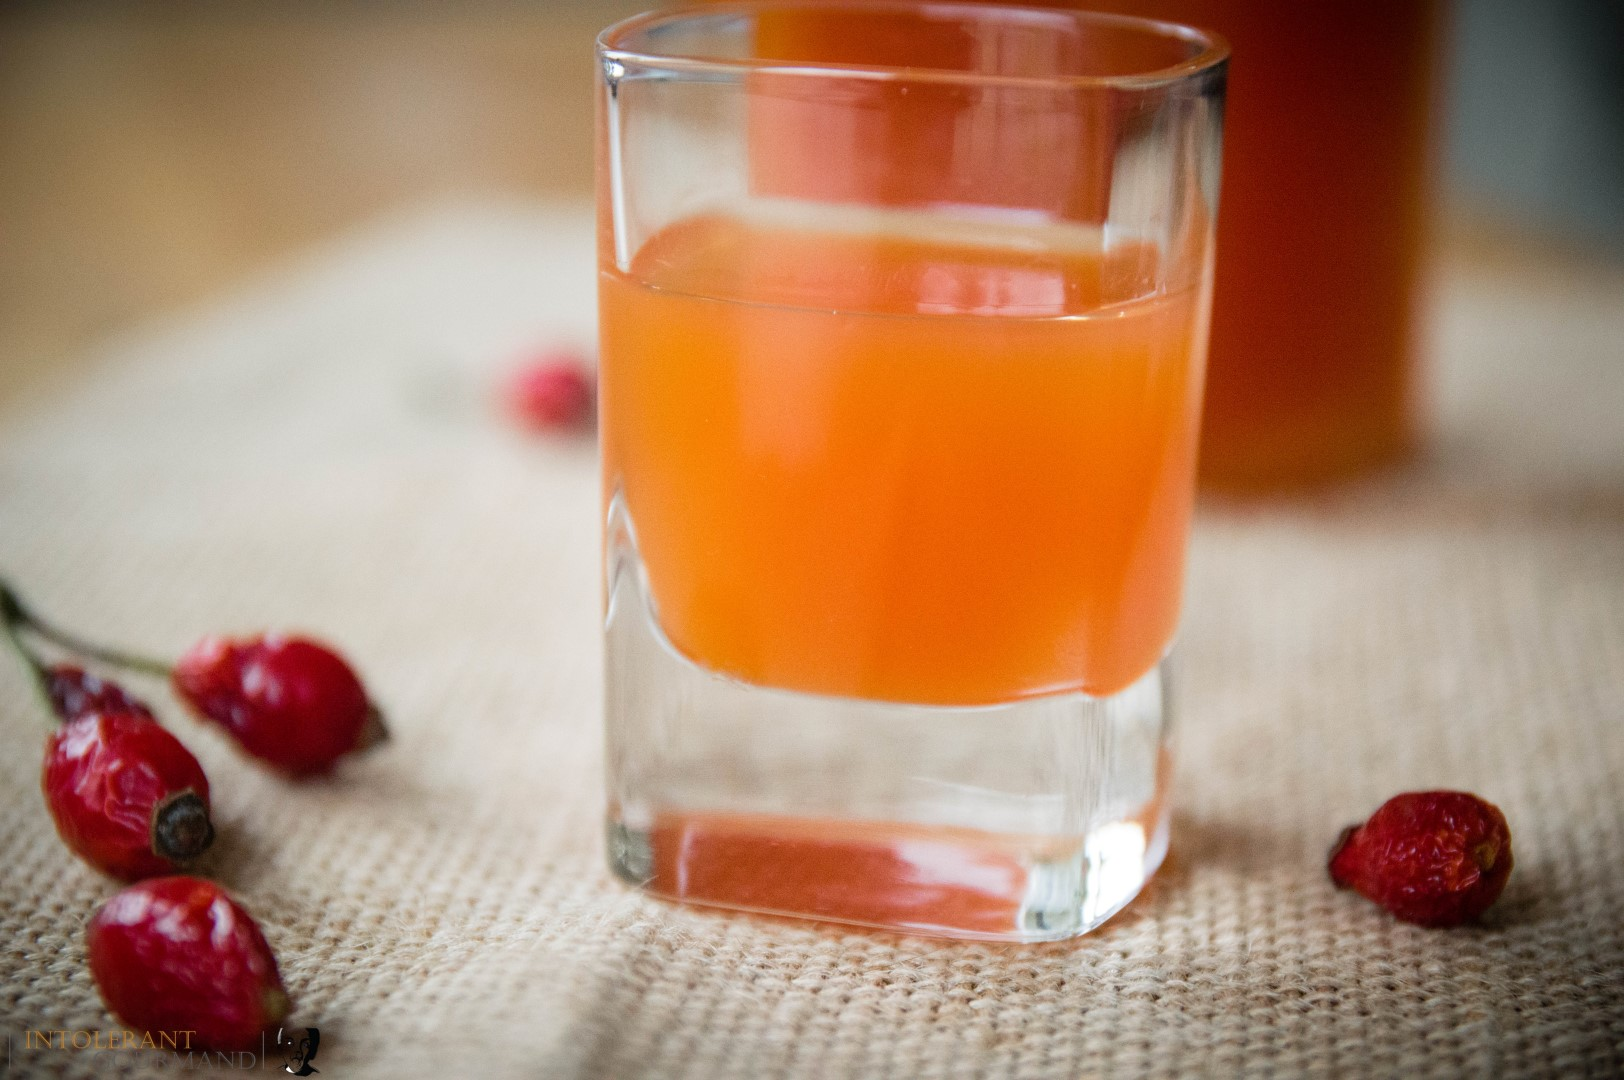 Rosehip Syrup - a delicious warm and comforting fruit syrup. Perfect on its own, stirred into porridge, poured over pancakes or ice cream and so much more! www.intolerantgourmand.com